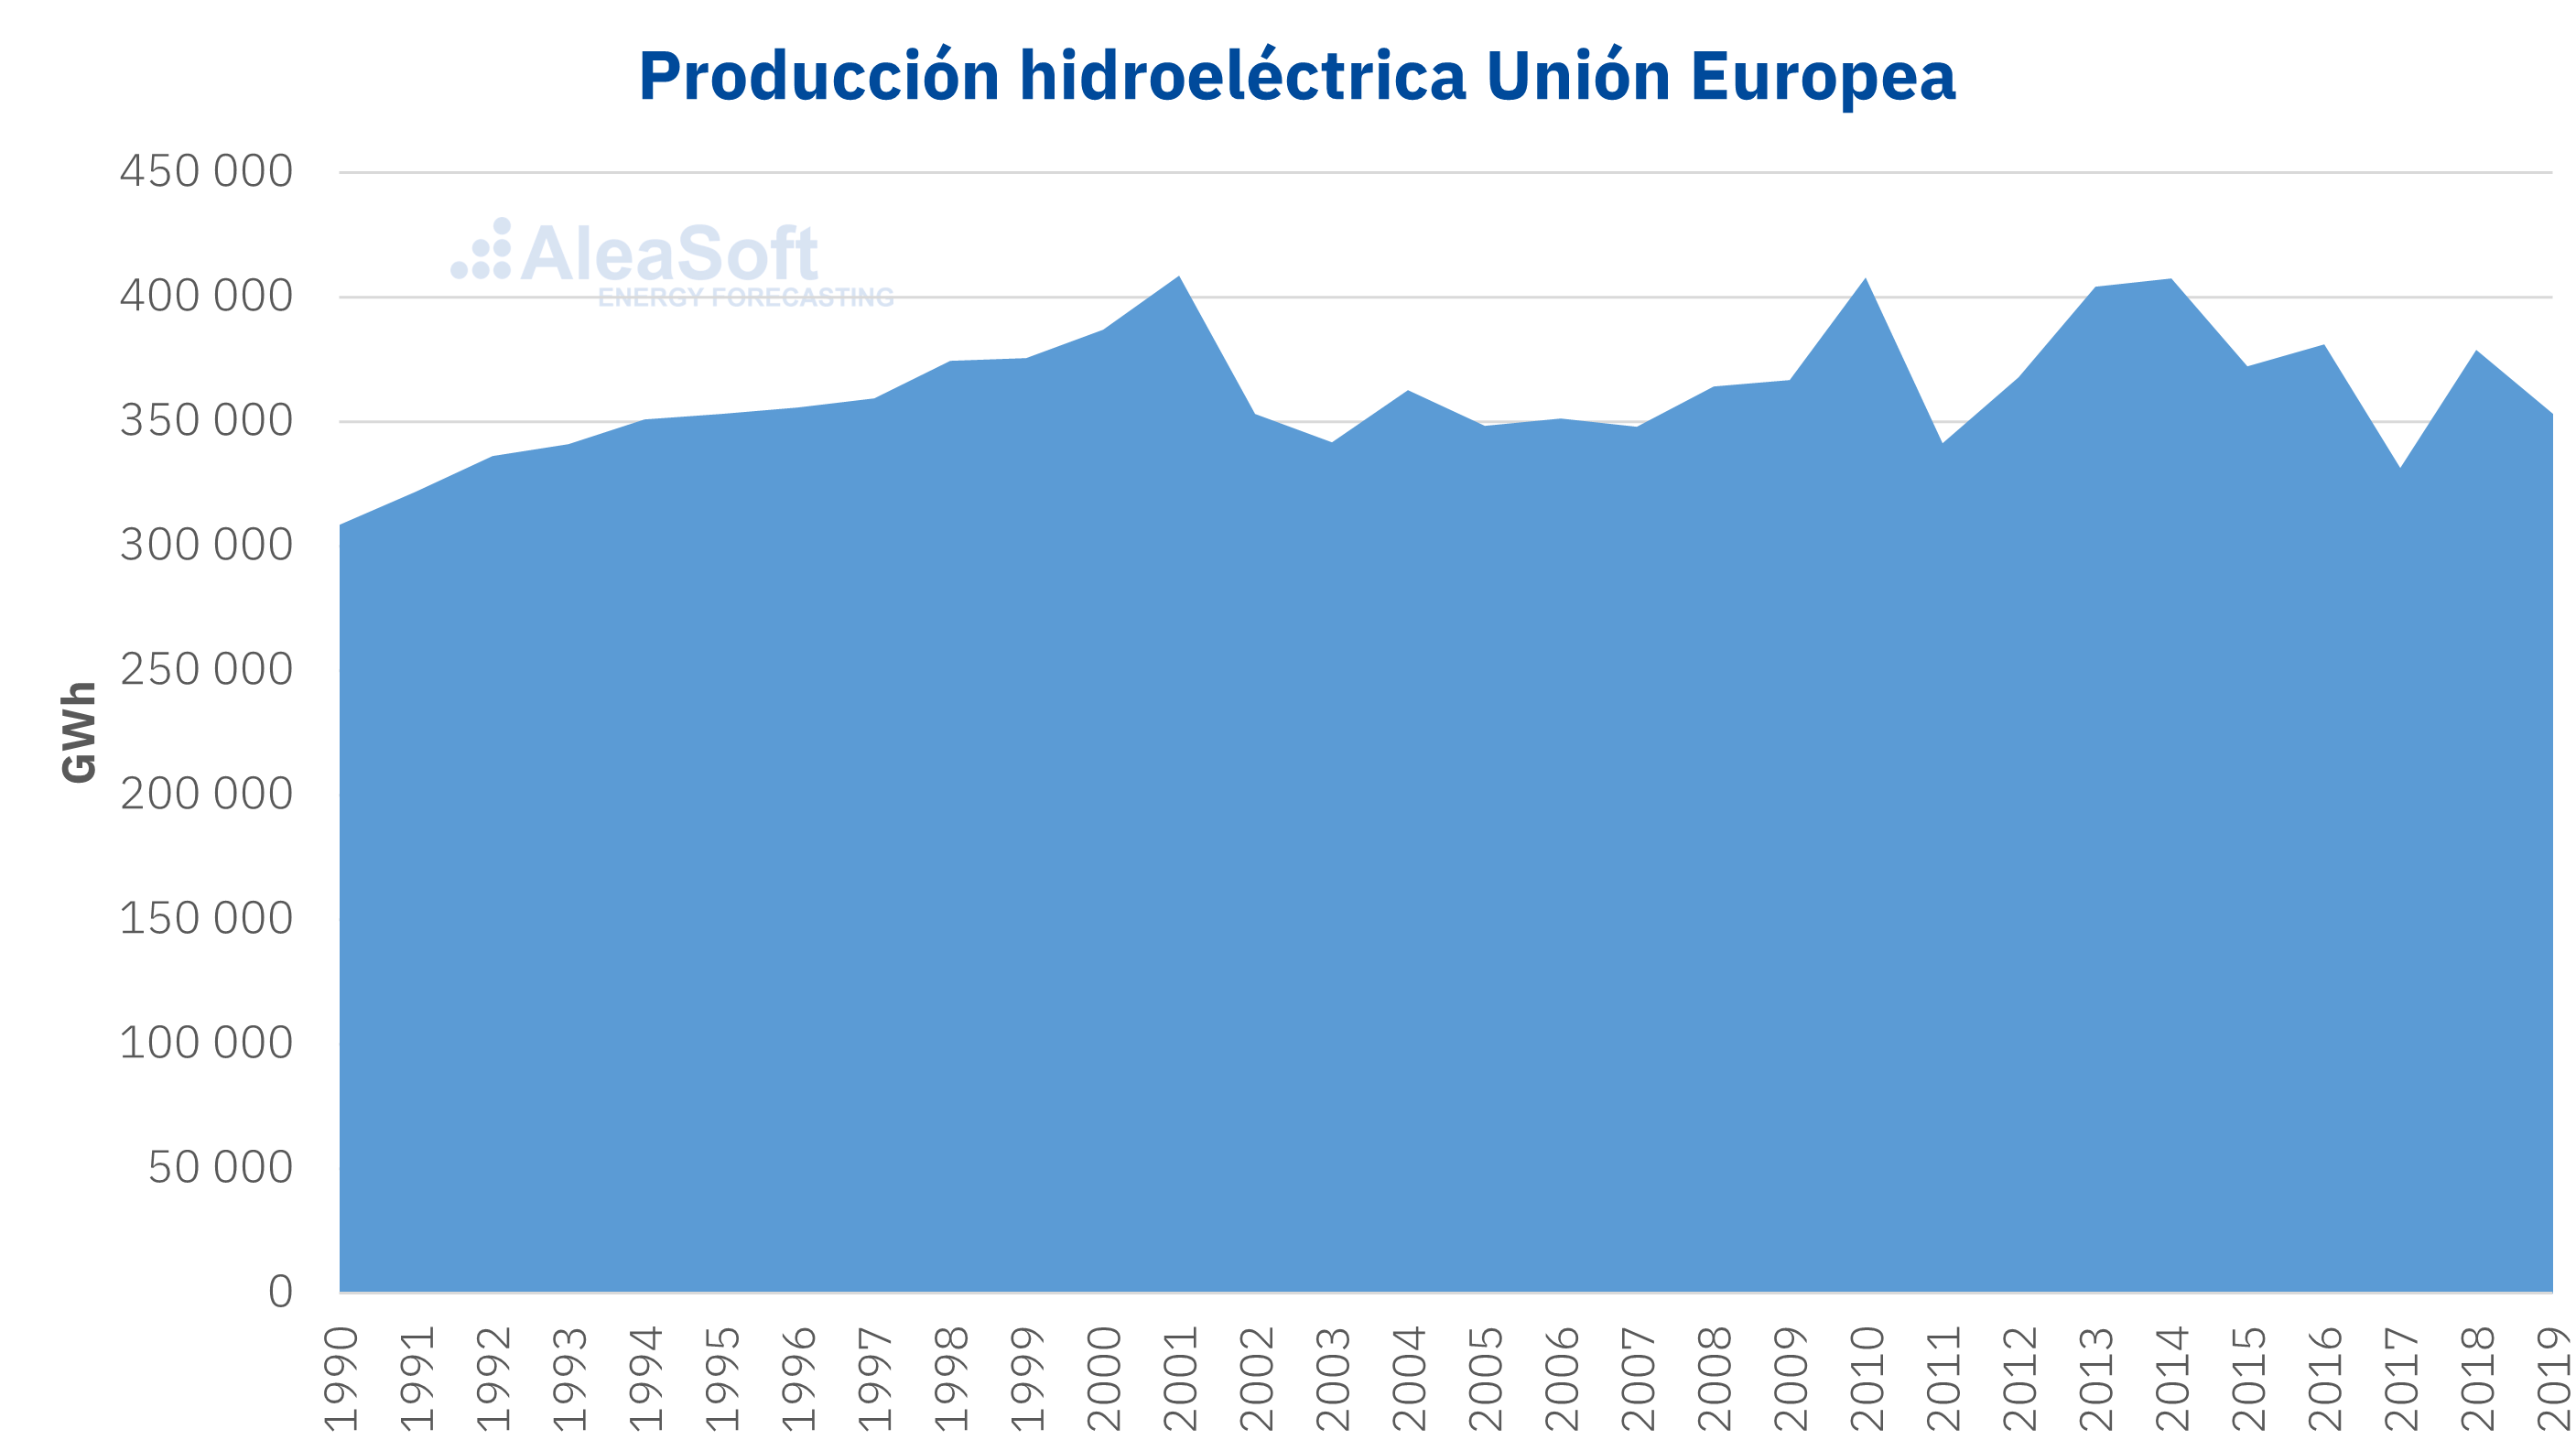 AleaSoft - Produccion hidroelectrica Union Europea